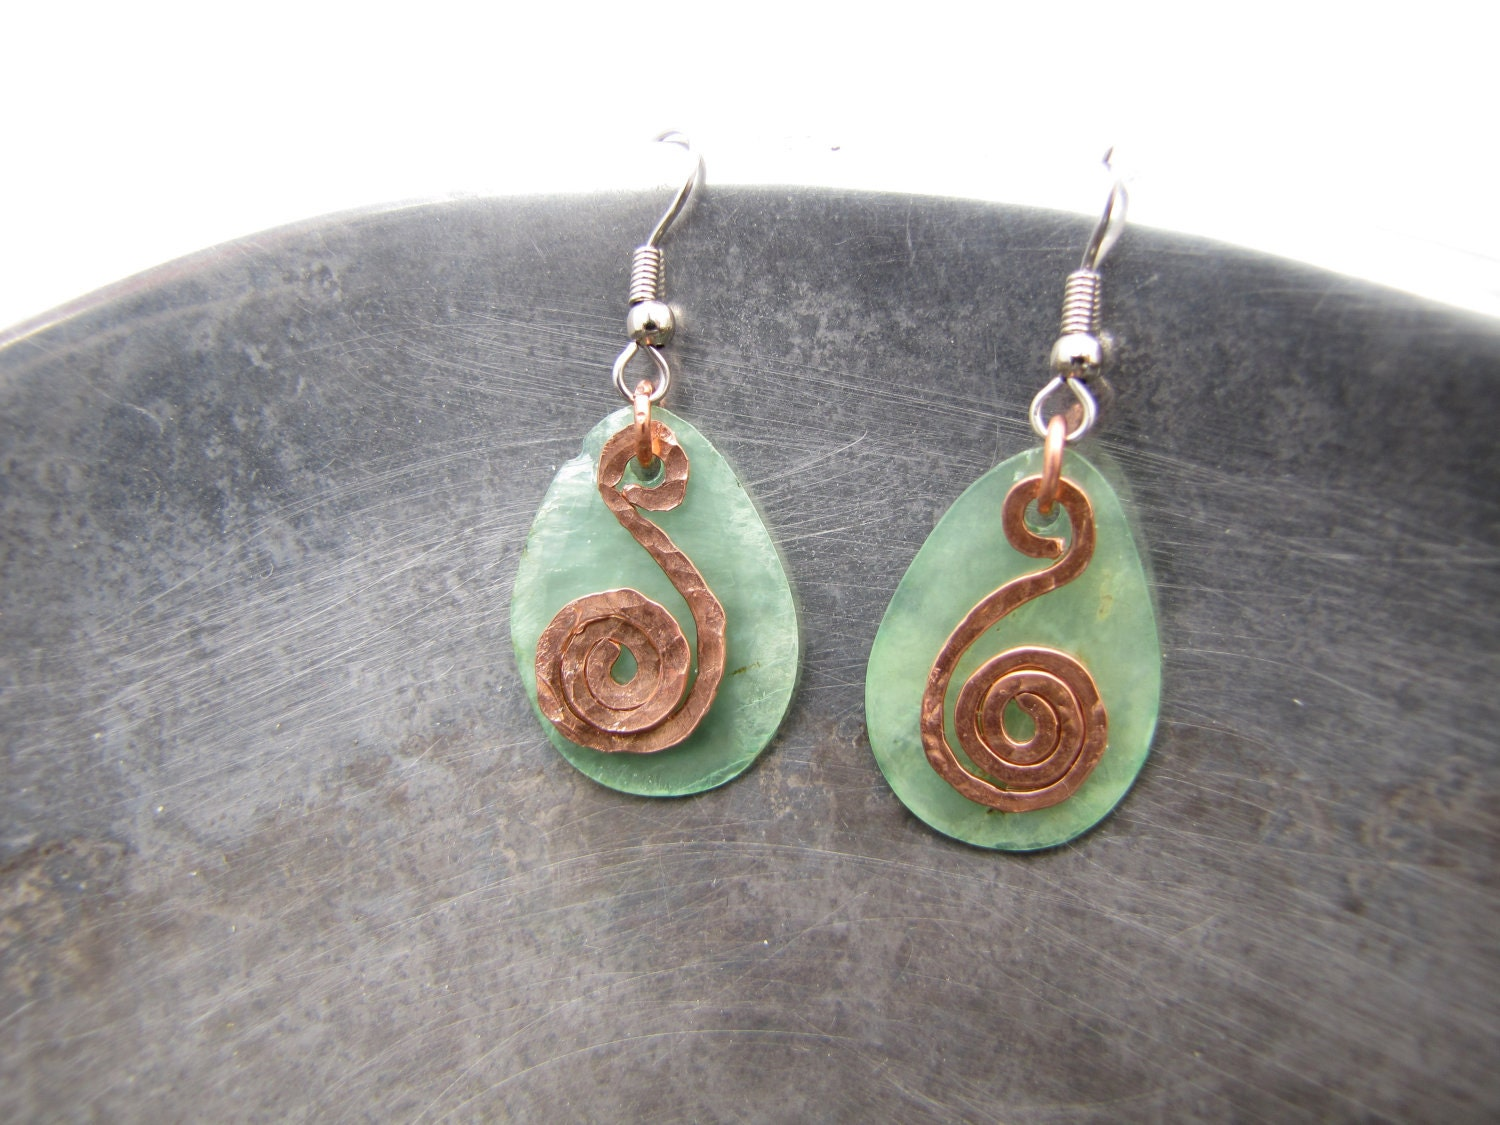 earrings: pale mint green capiz shell teardrops with flat-hammered-copper wire shaped into a spiral placed in front, looking somewhat like a treble clef